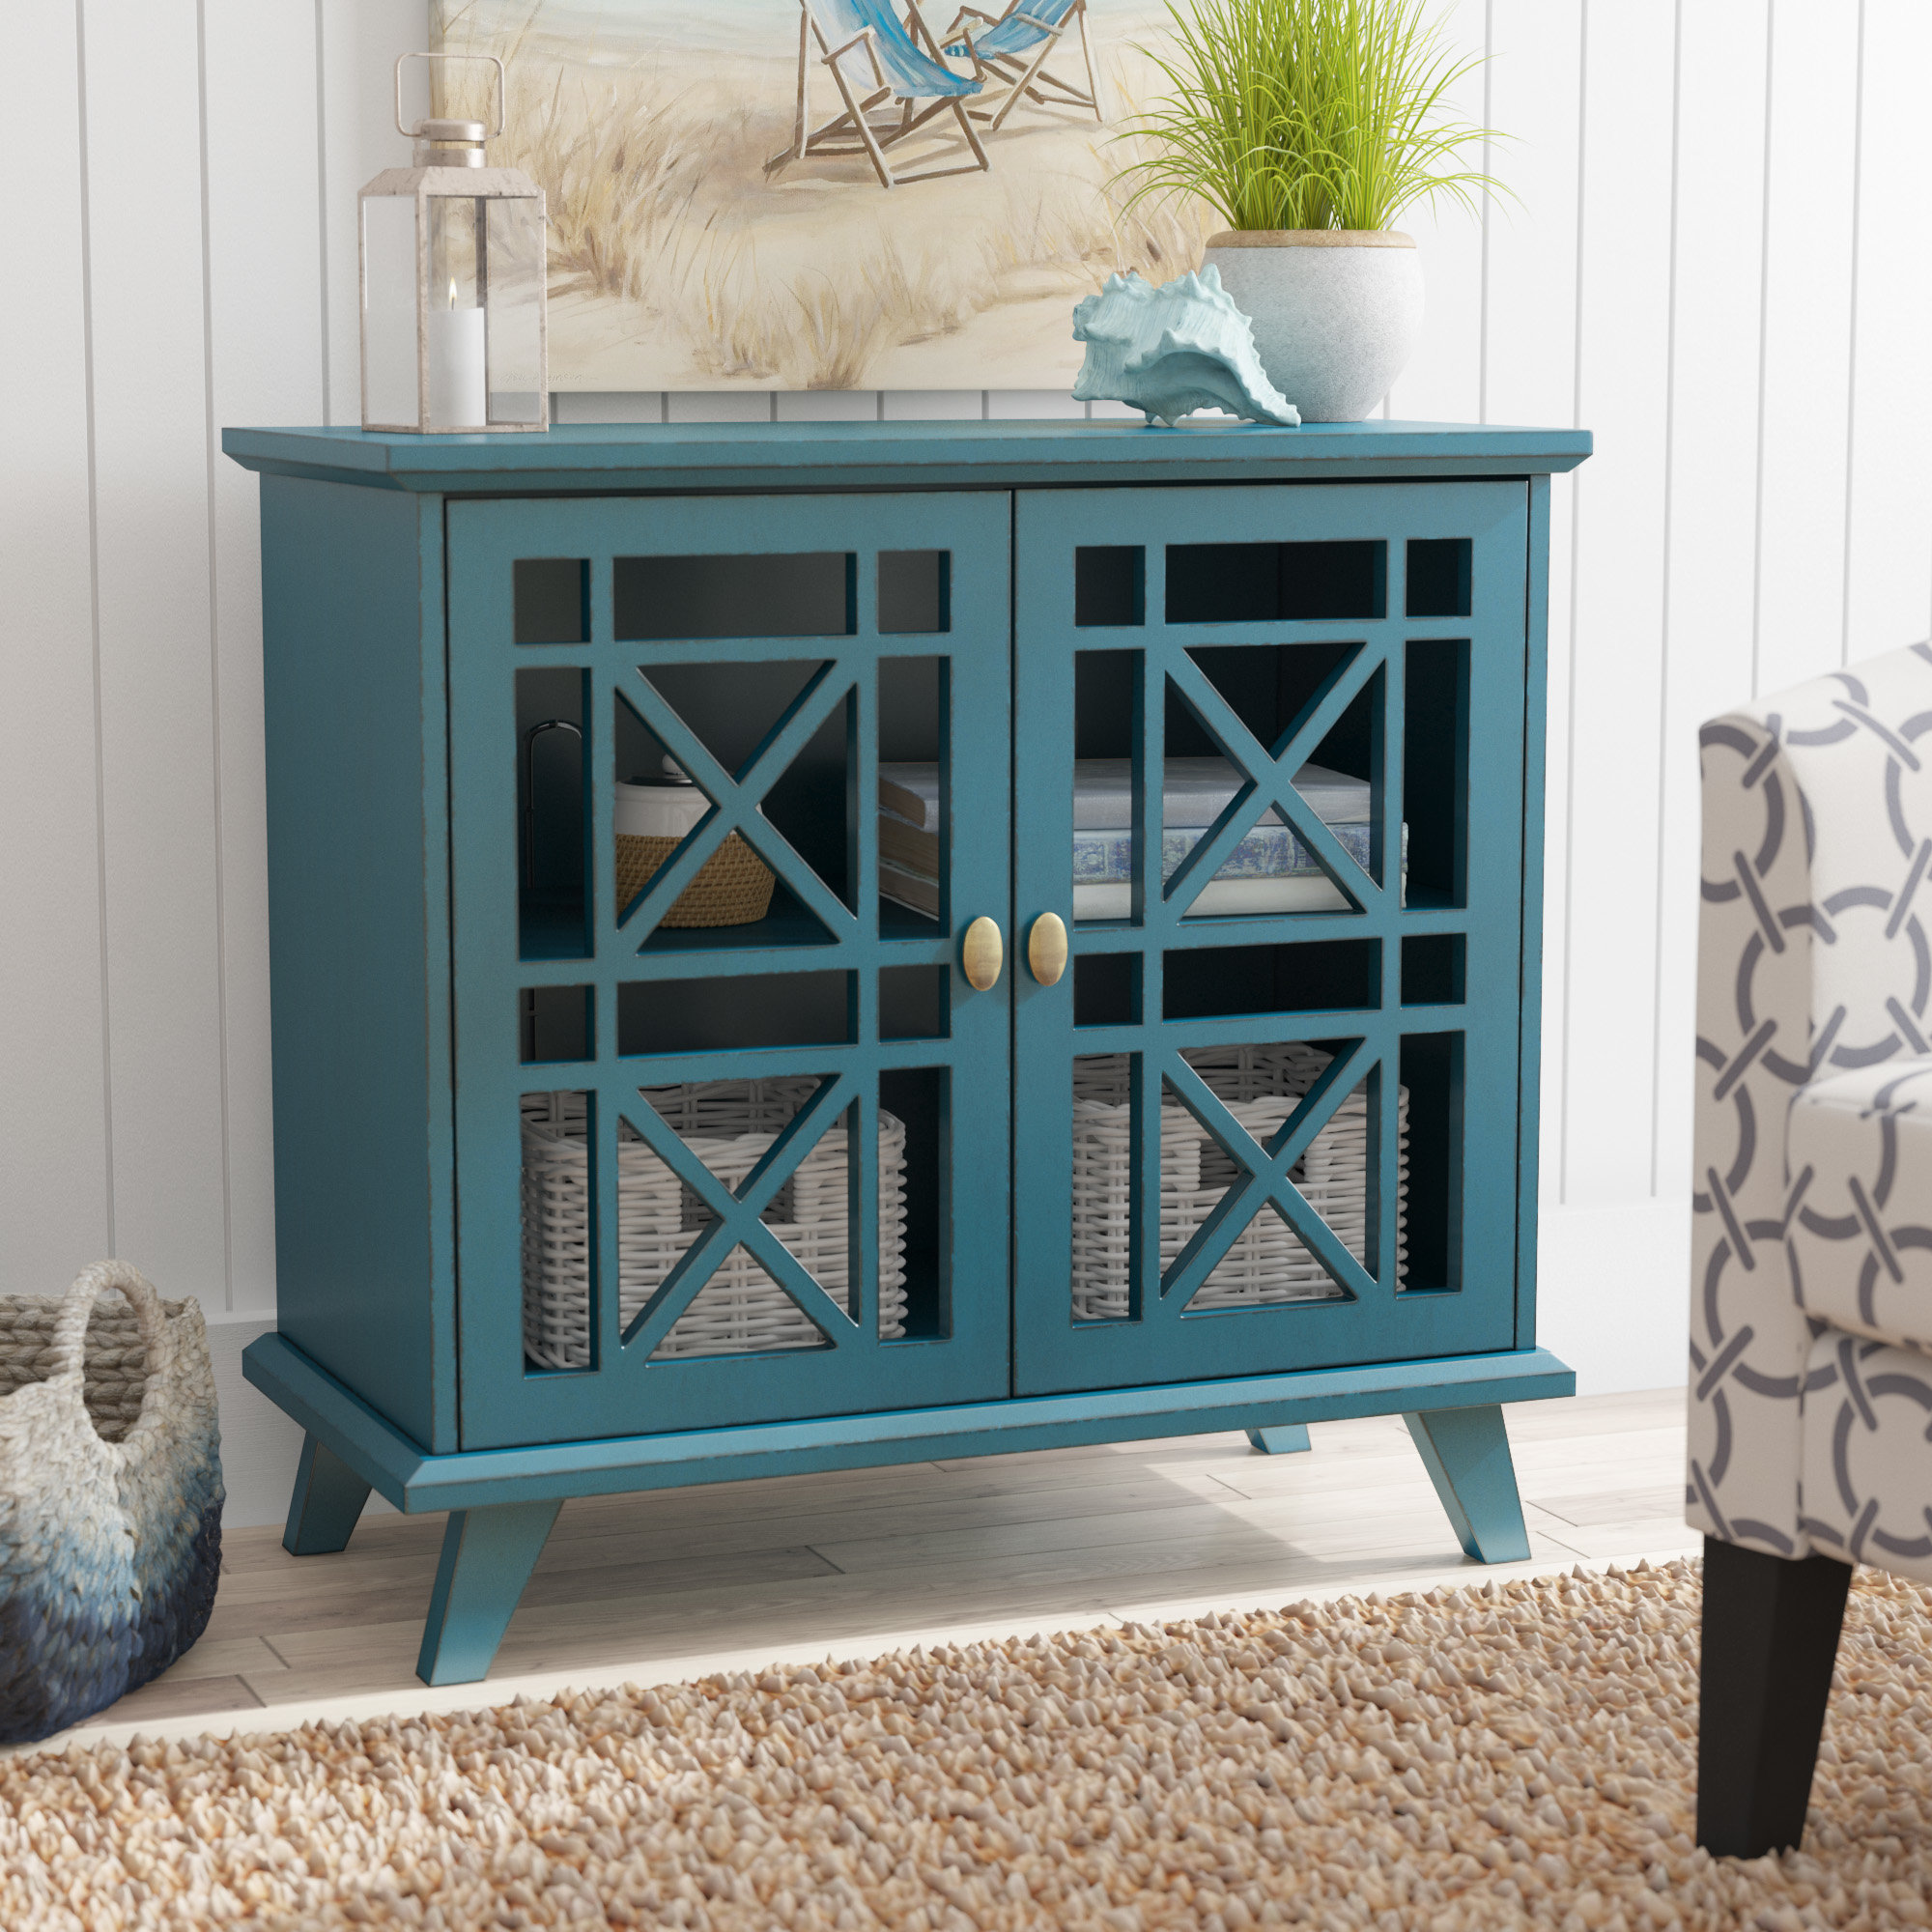 beachcrest home matheus fretwork door accent cabinet reviews room essentials table instructions ikea dining furniture small industrial end outdoor corner tables astoria pier beds